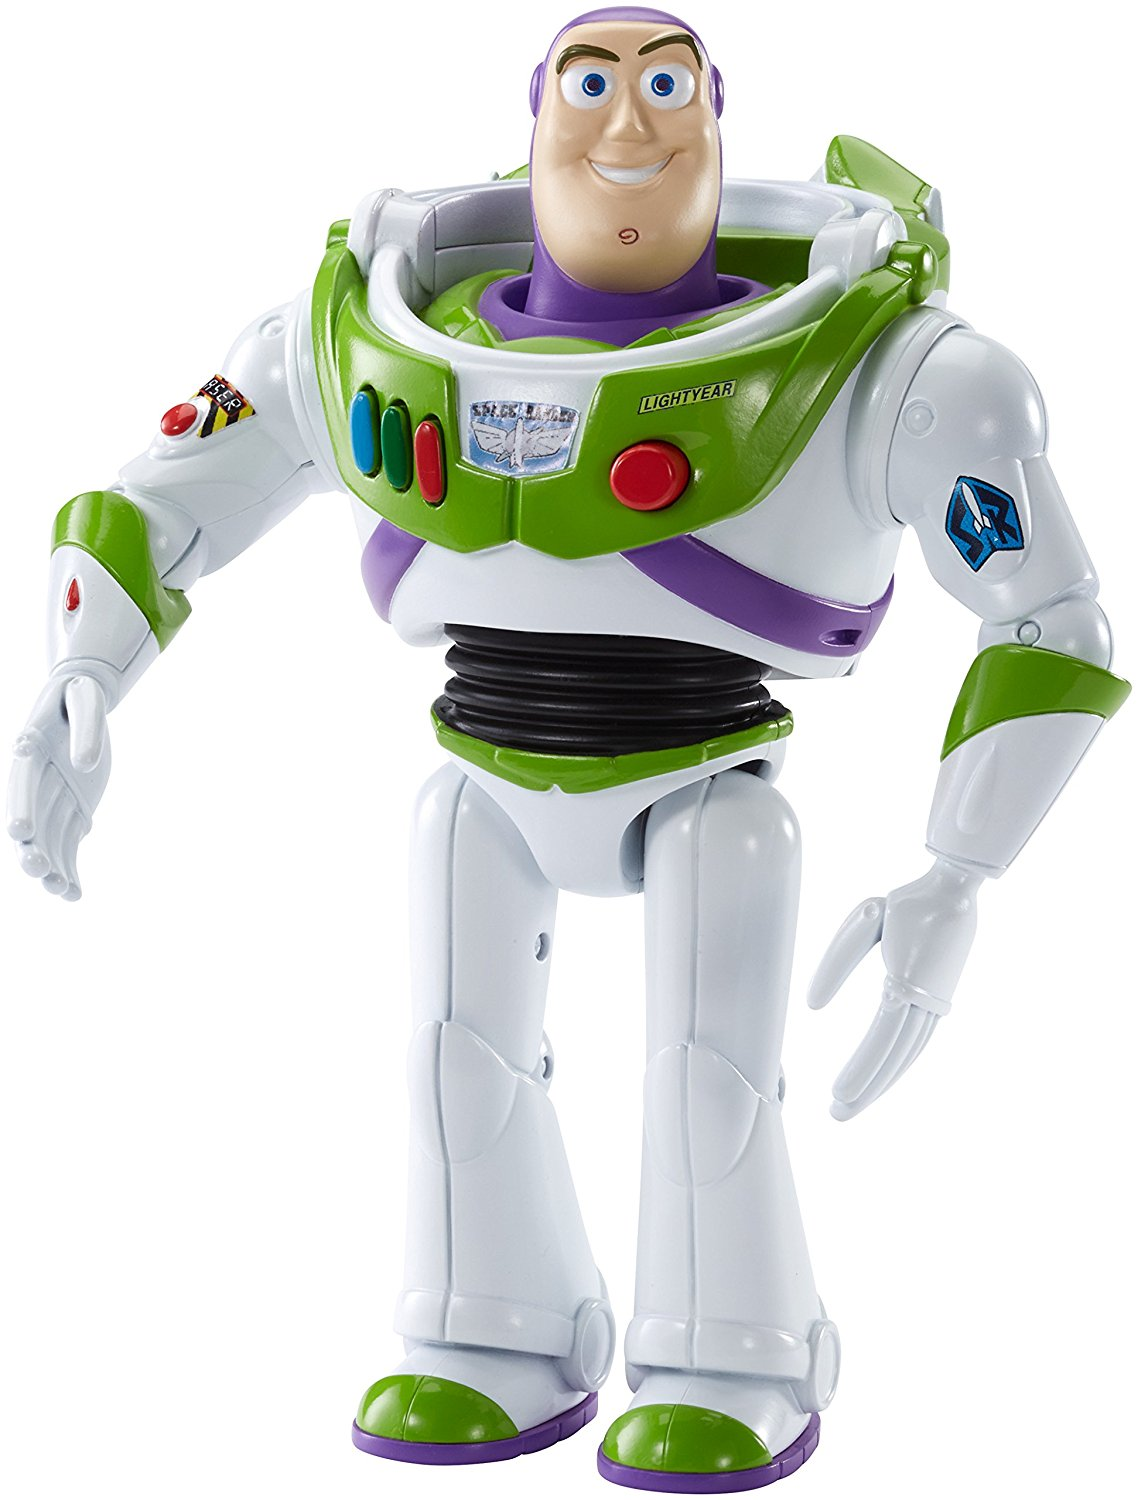 Toy Story Small Talking Buzz Lightyear Action Figure By Mattel